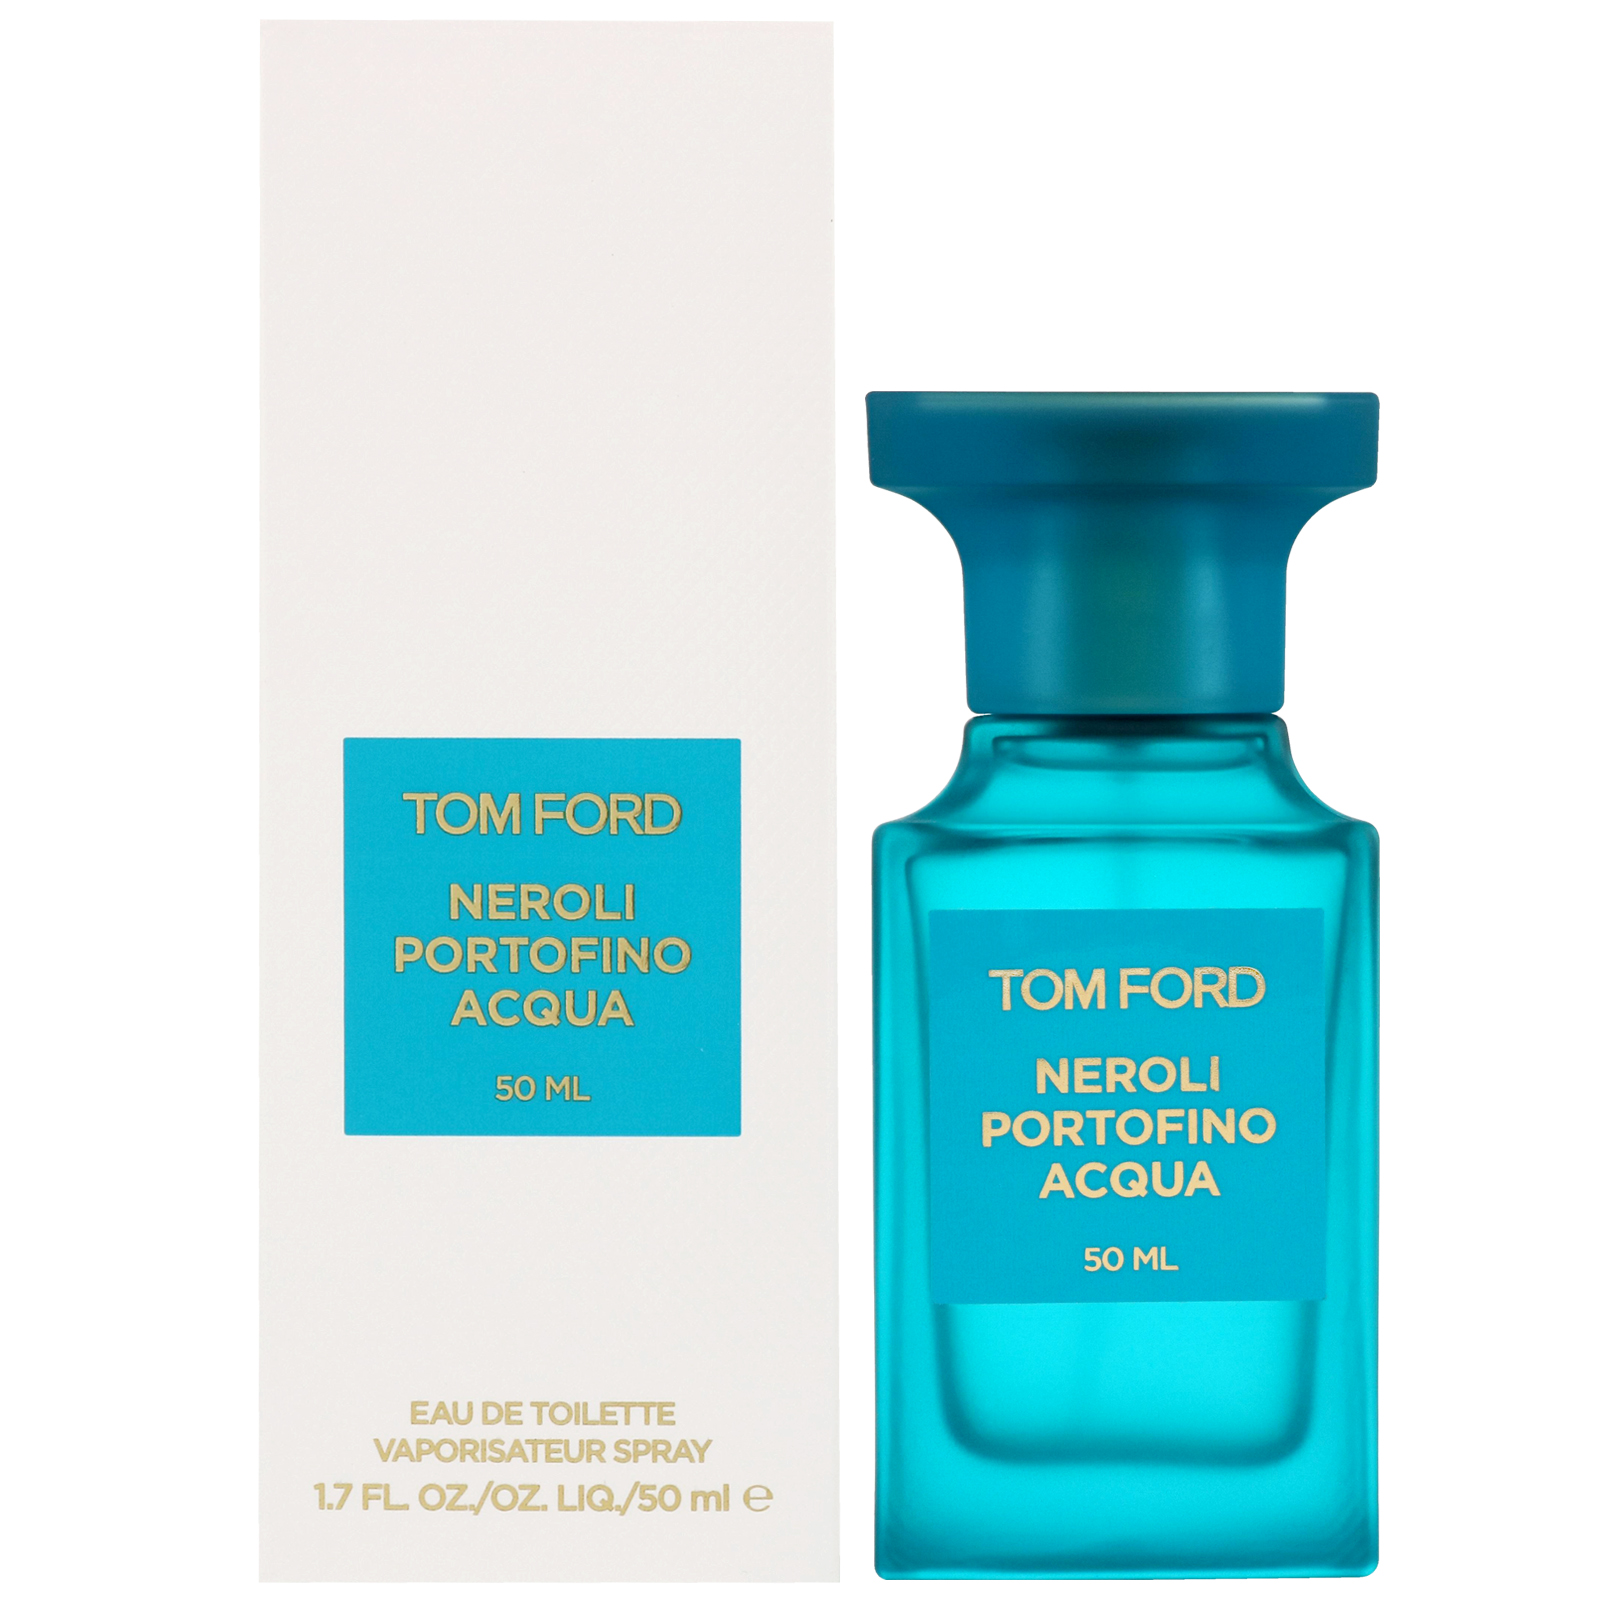 Tom Ford Neroli Portofino 50ml EMPTY